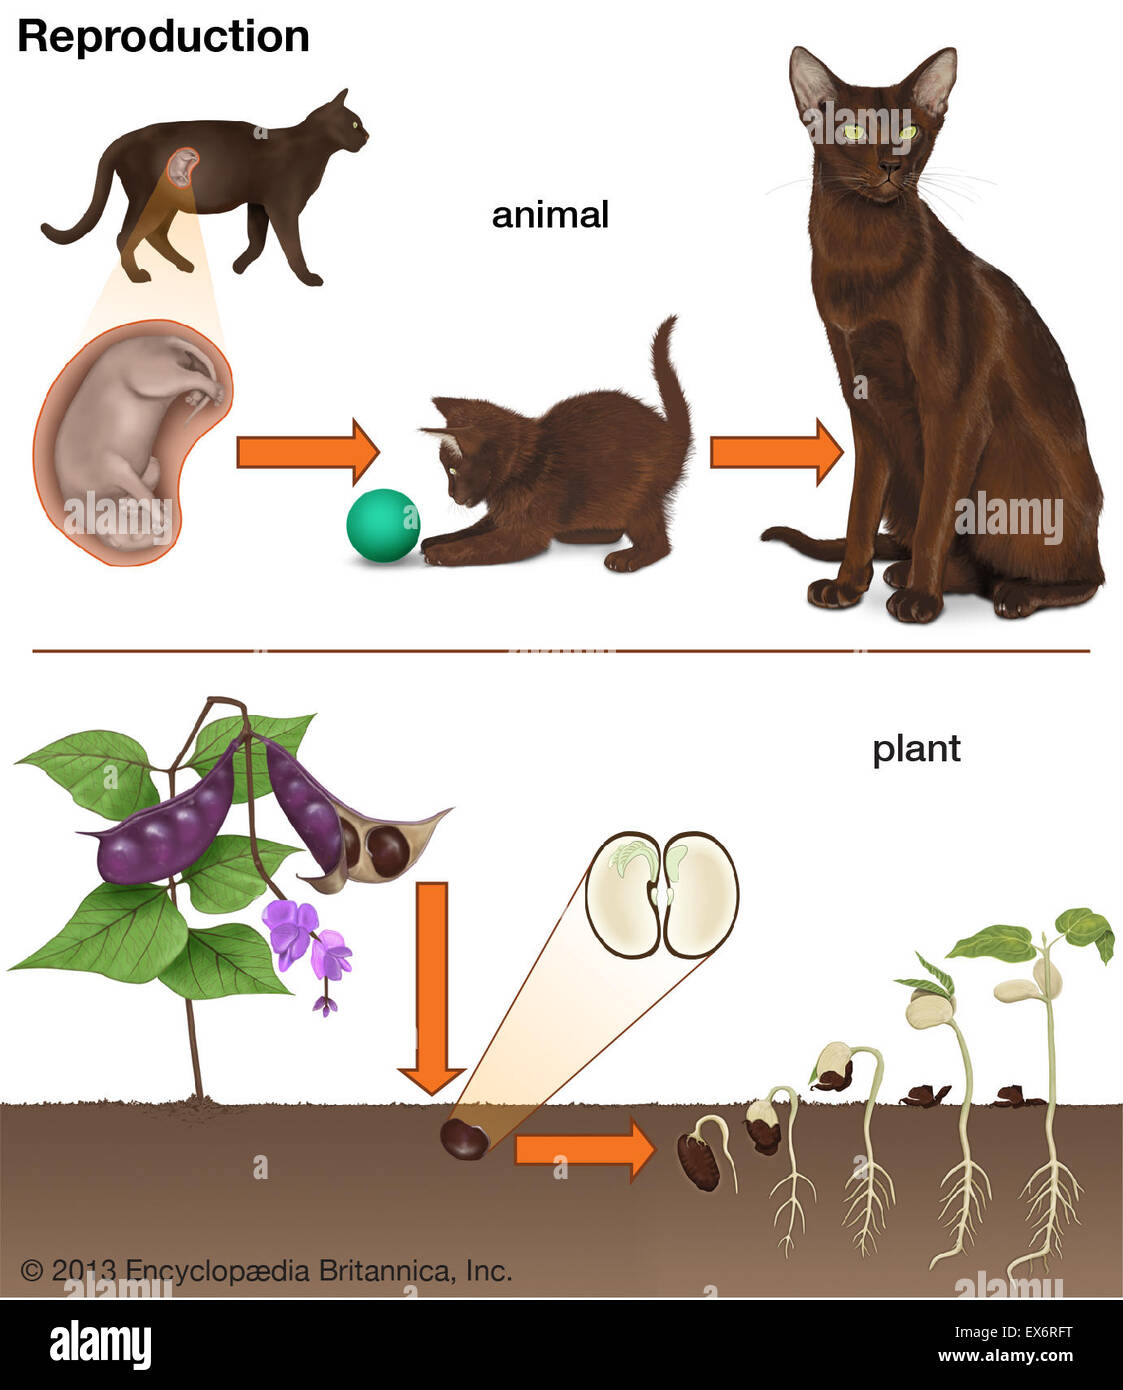 Animal and plant reproduction - Stock Image